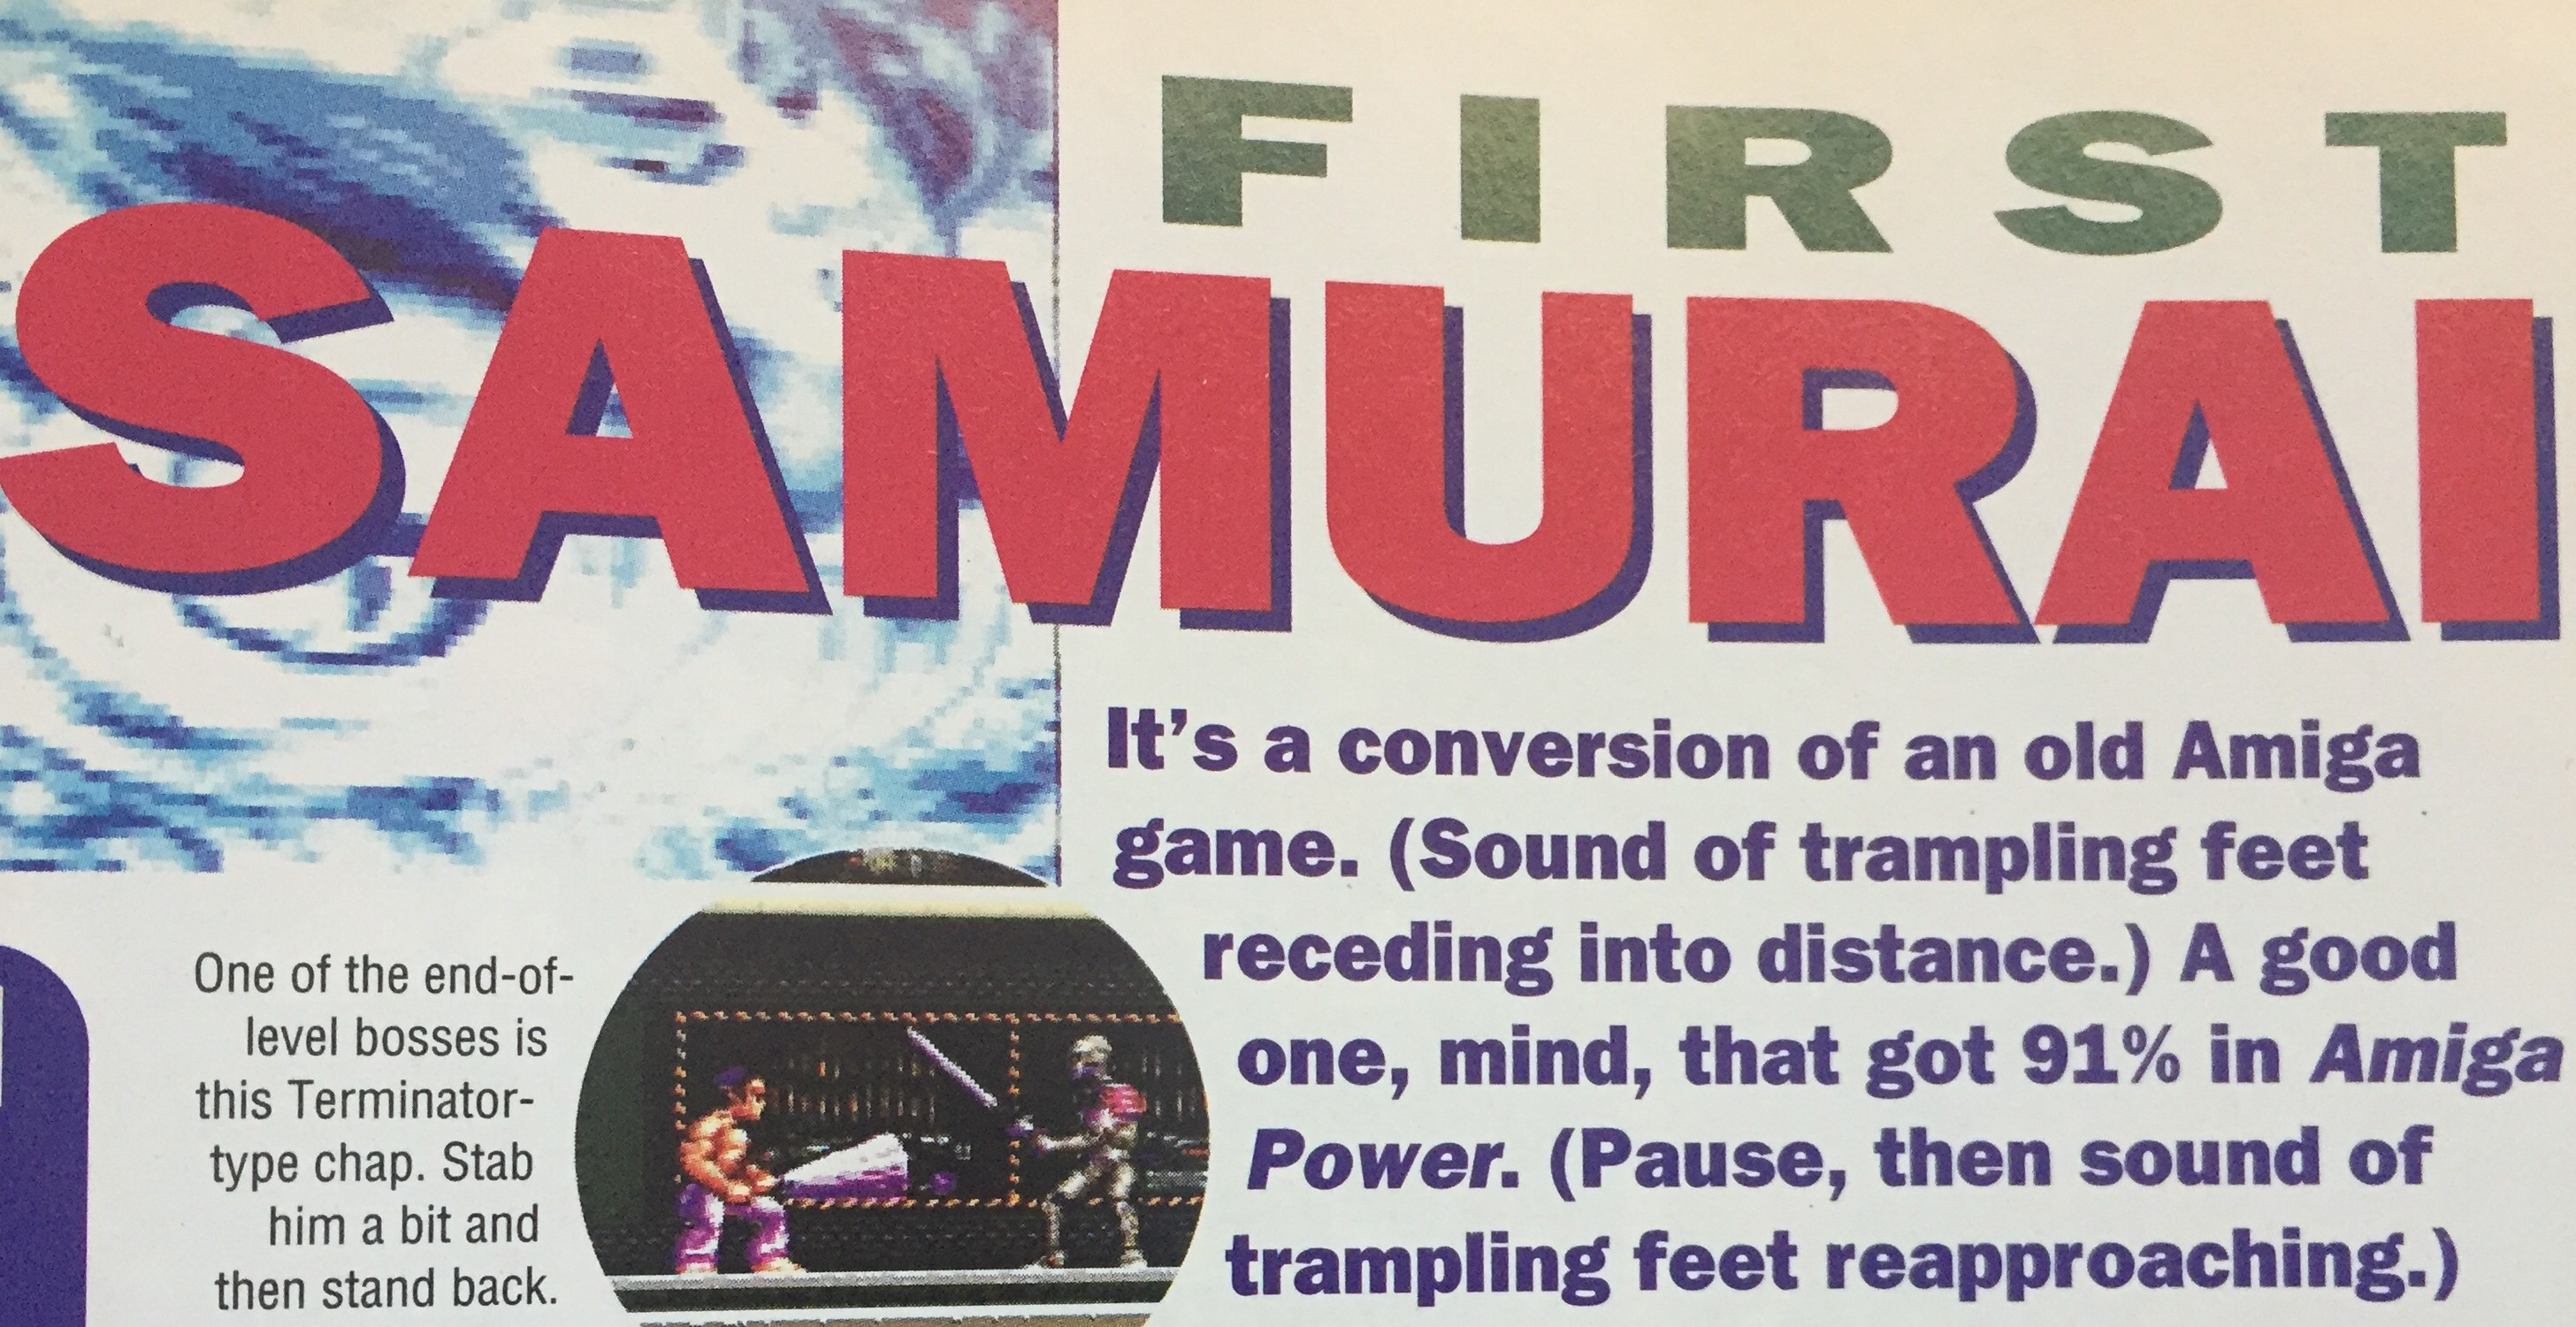 Amiga? No thanks. Oh what, 91%? I'm listening...